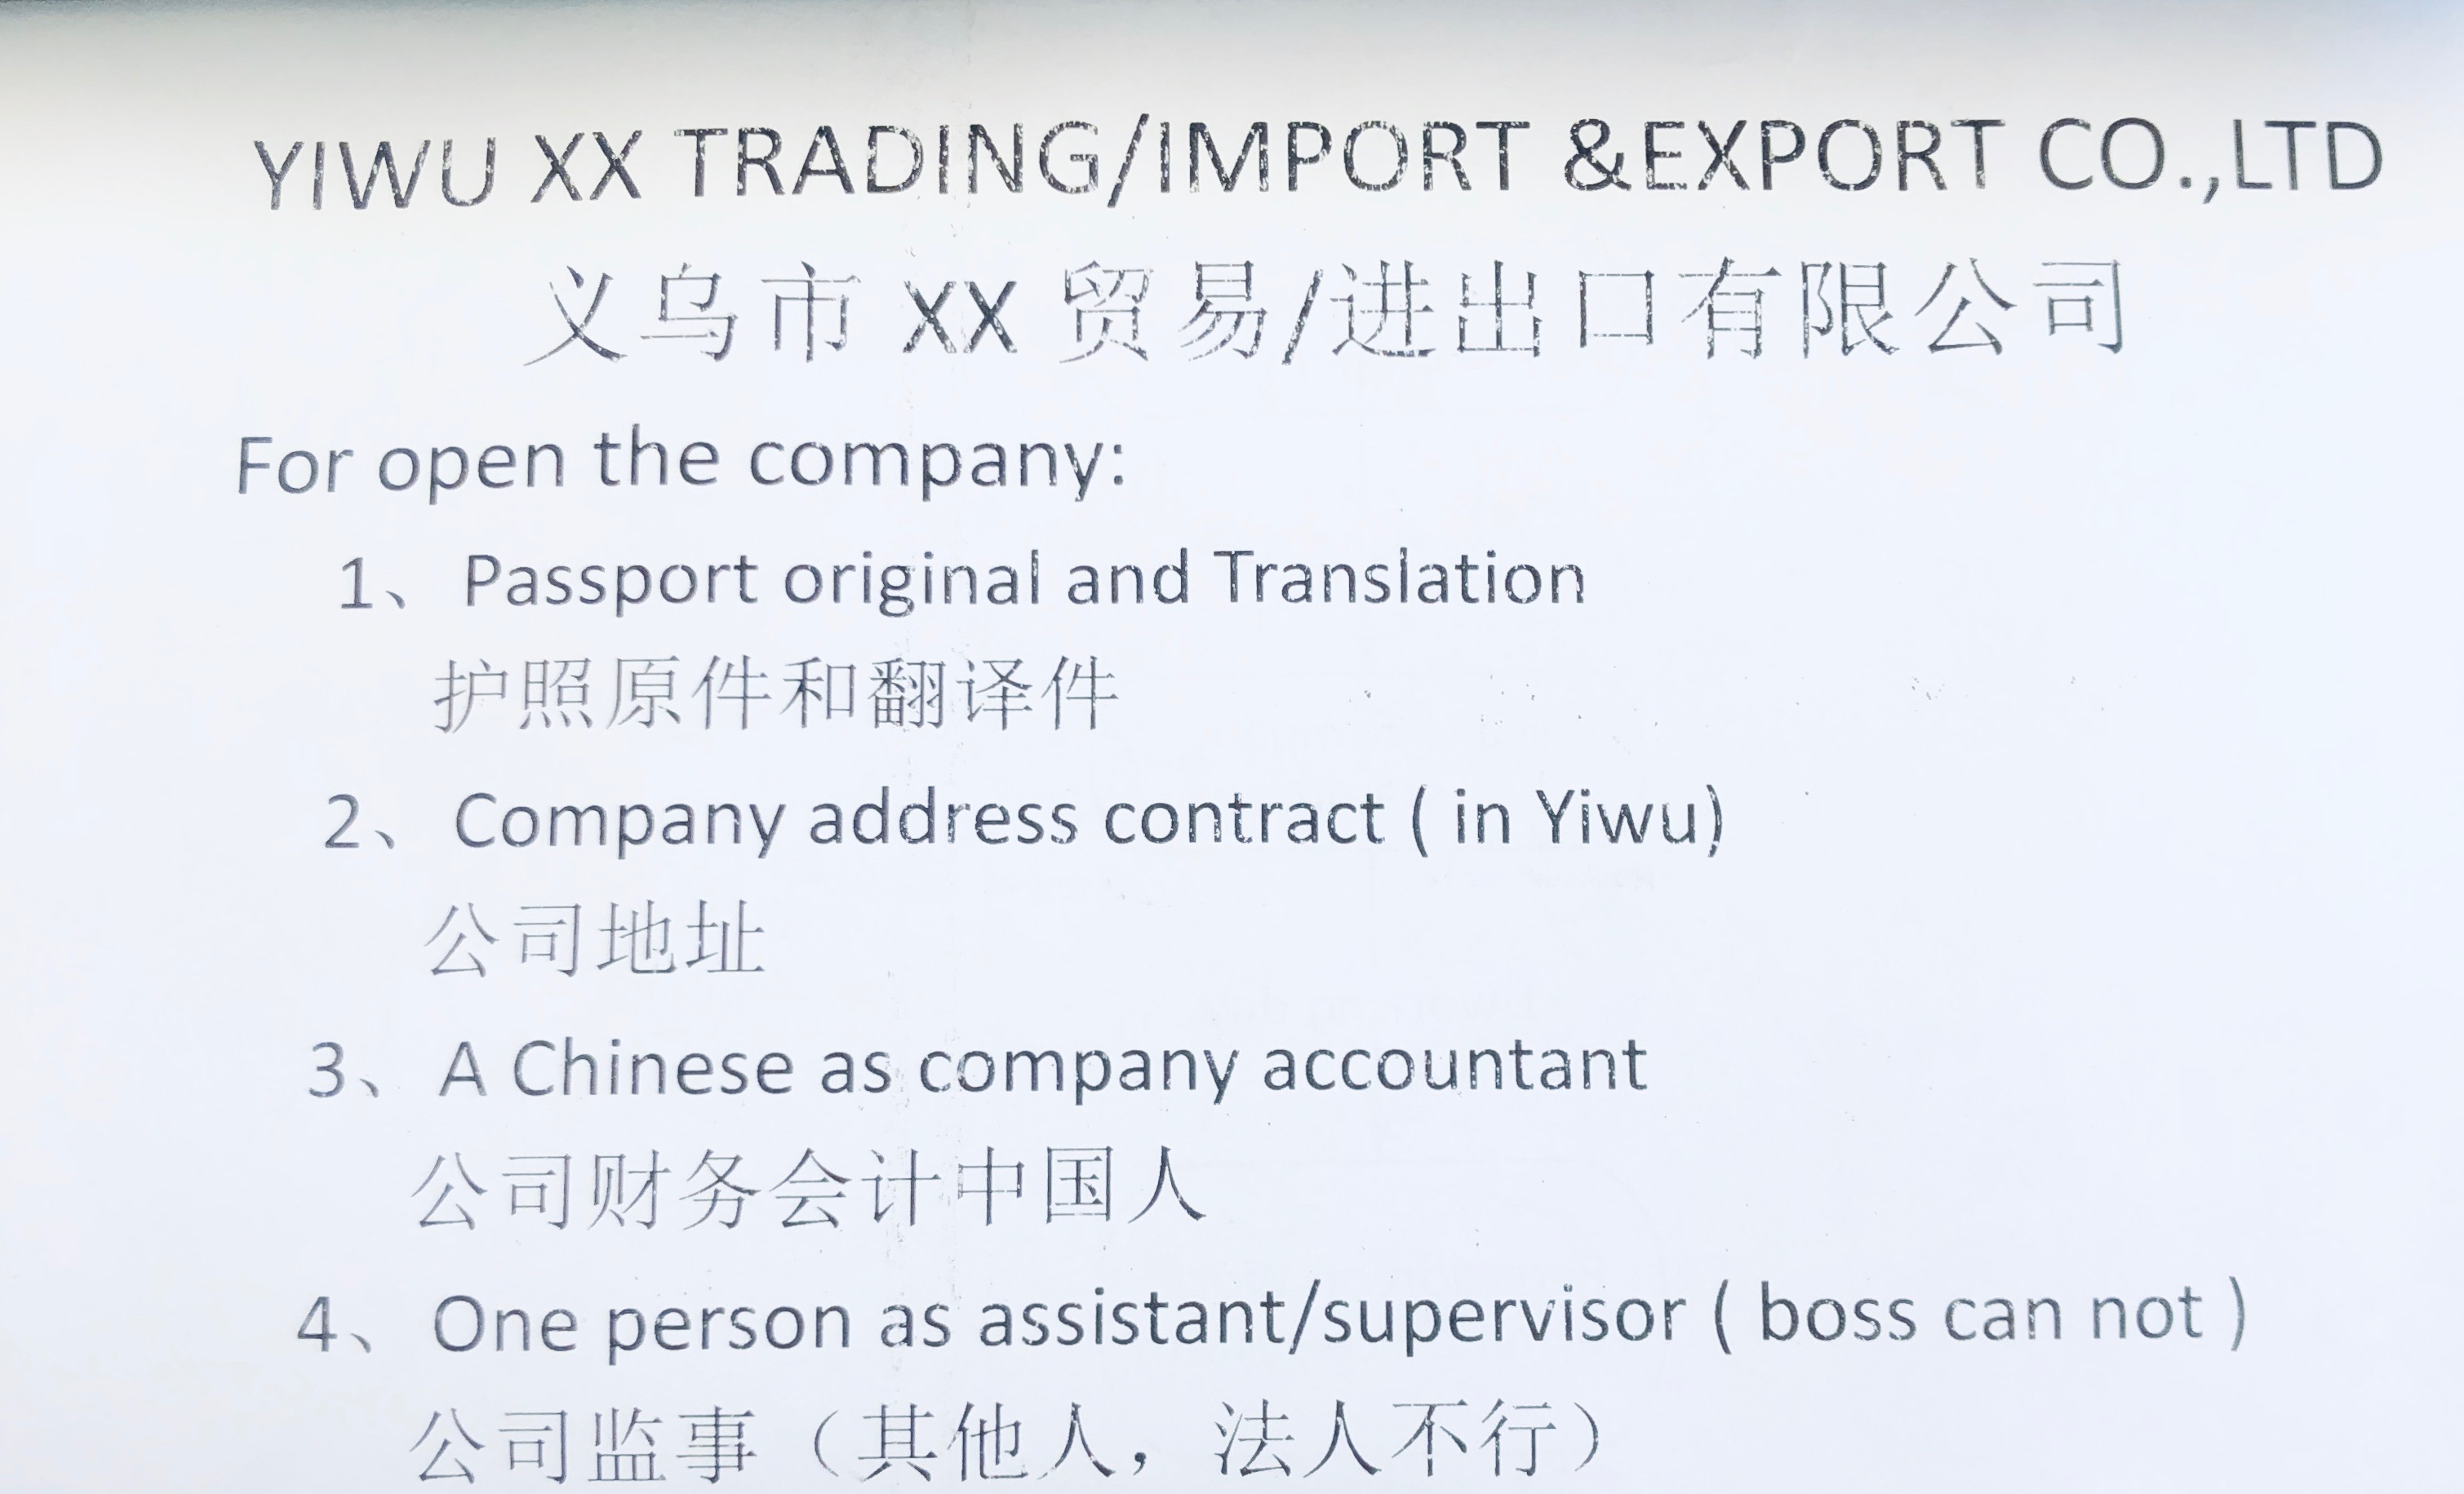 docs (documents) / material required for open (register ) company in Yiwu China